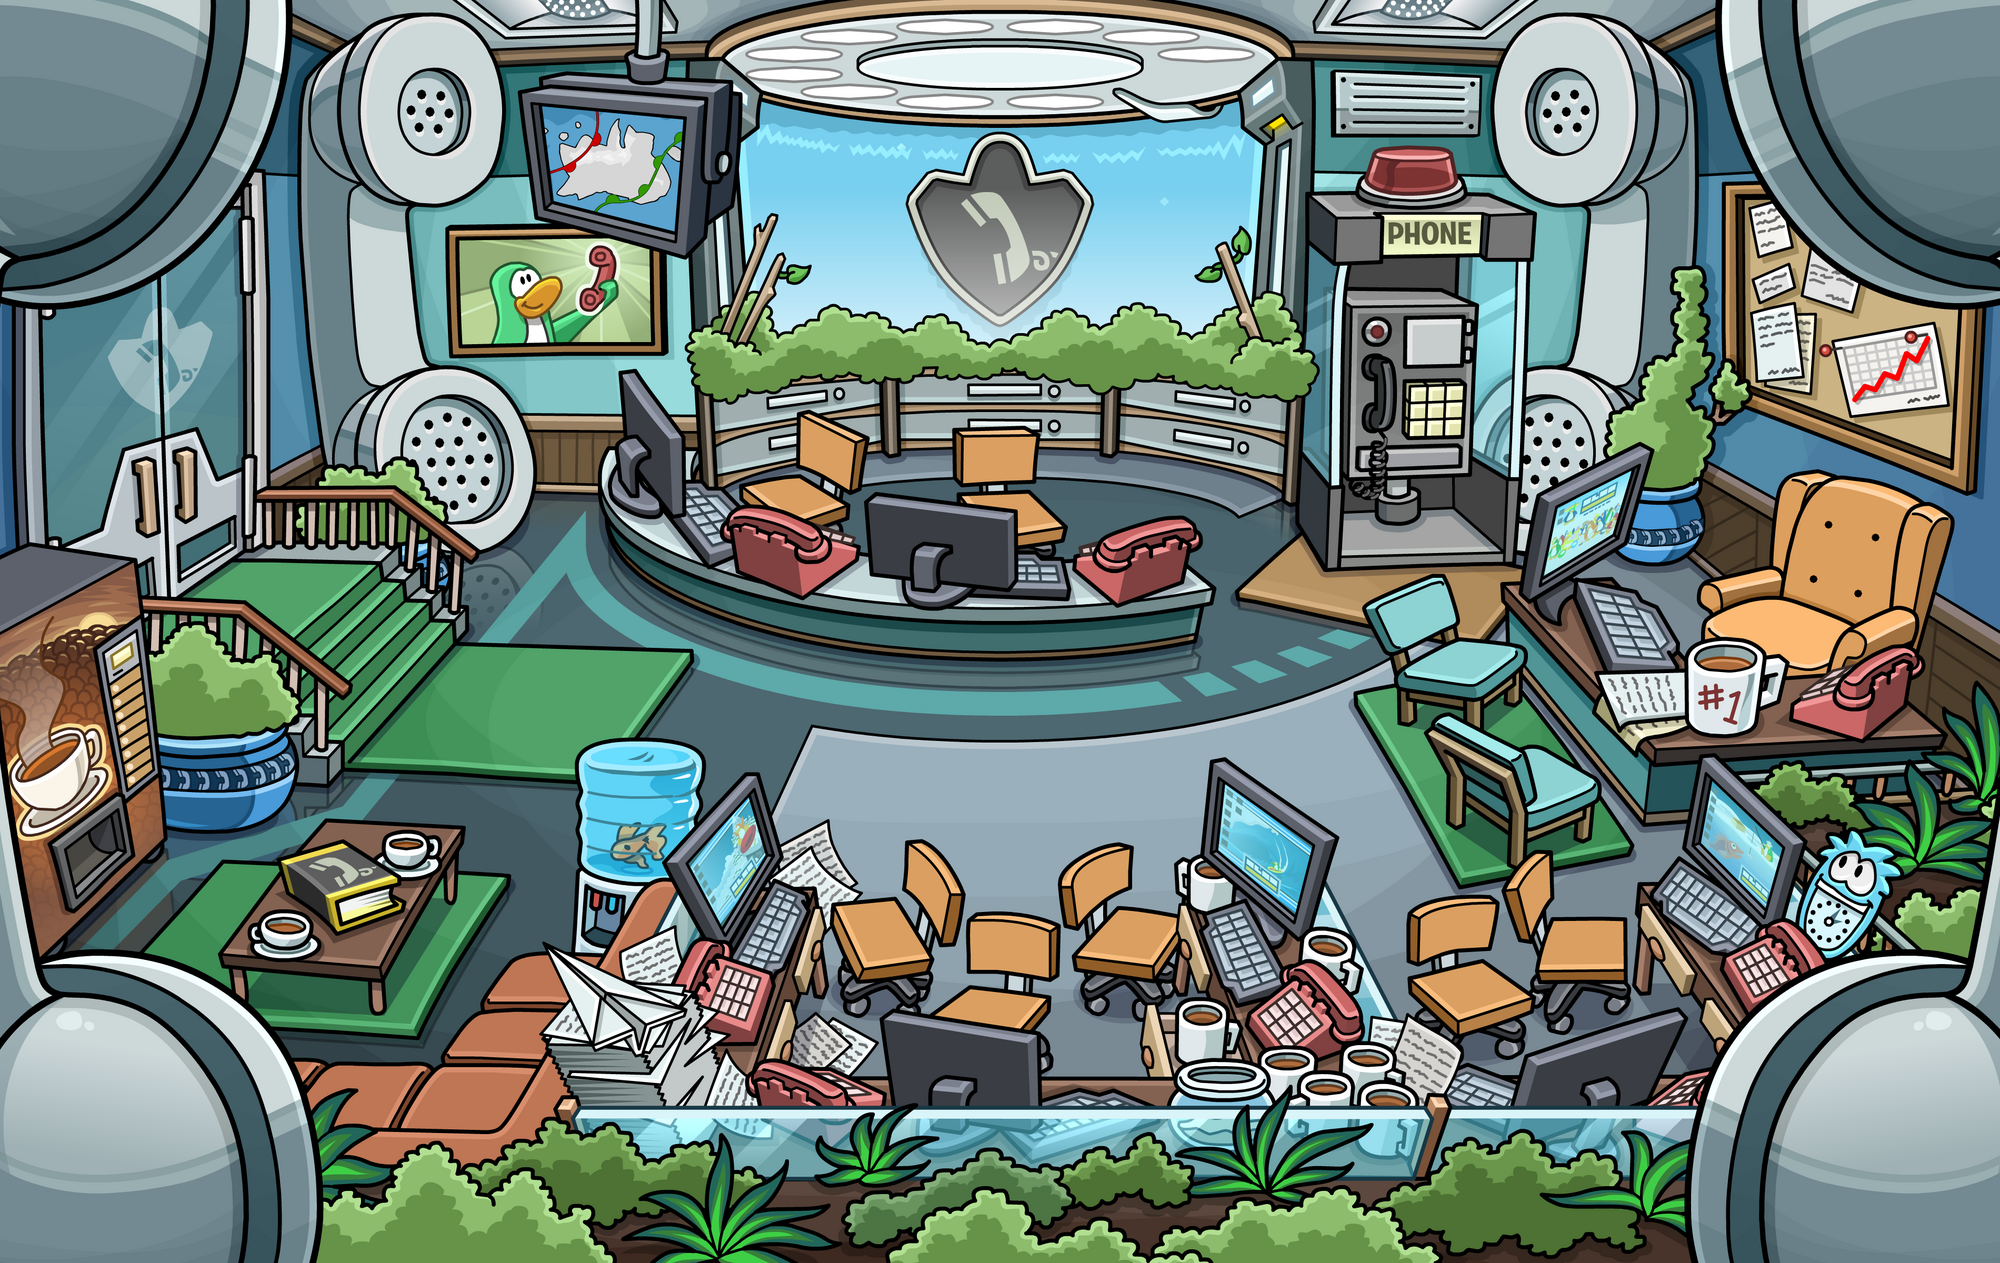 2000?cb=20150801114341 club penguin boiler room fuse box club wiring diagrams collection club penguin case of the missing coins fuse box at gsmx.co